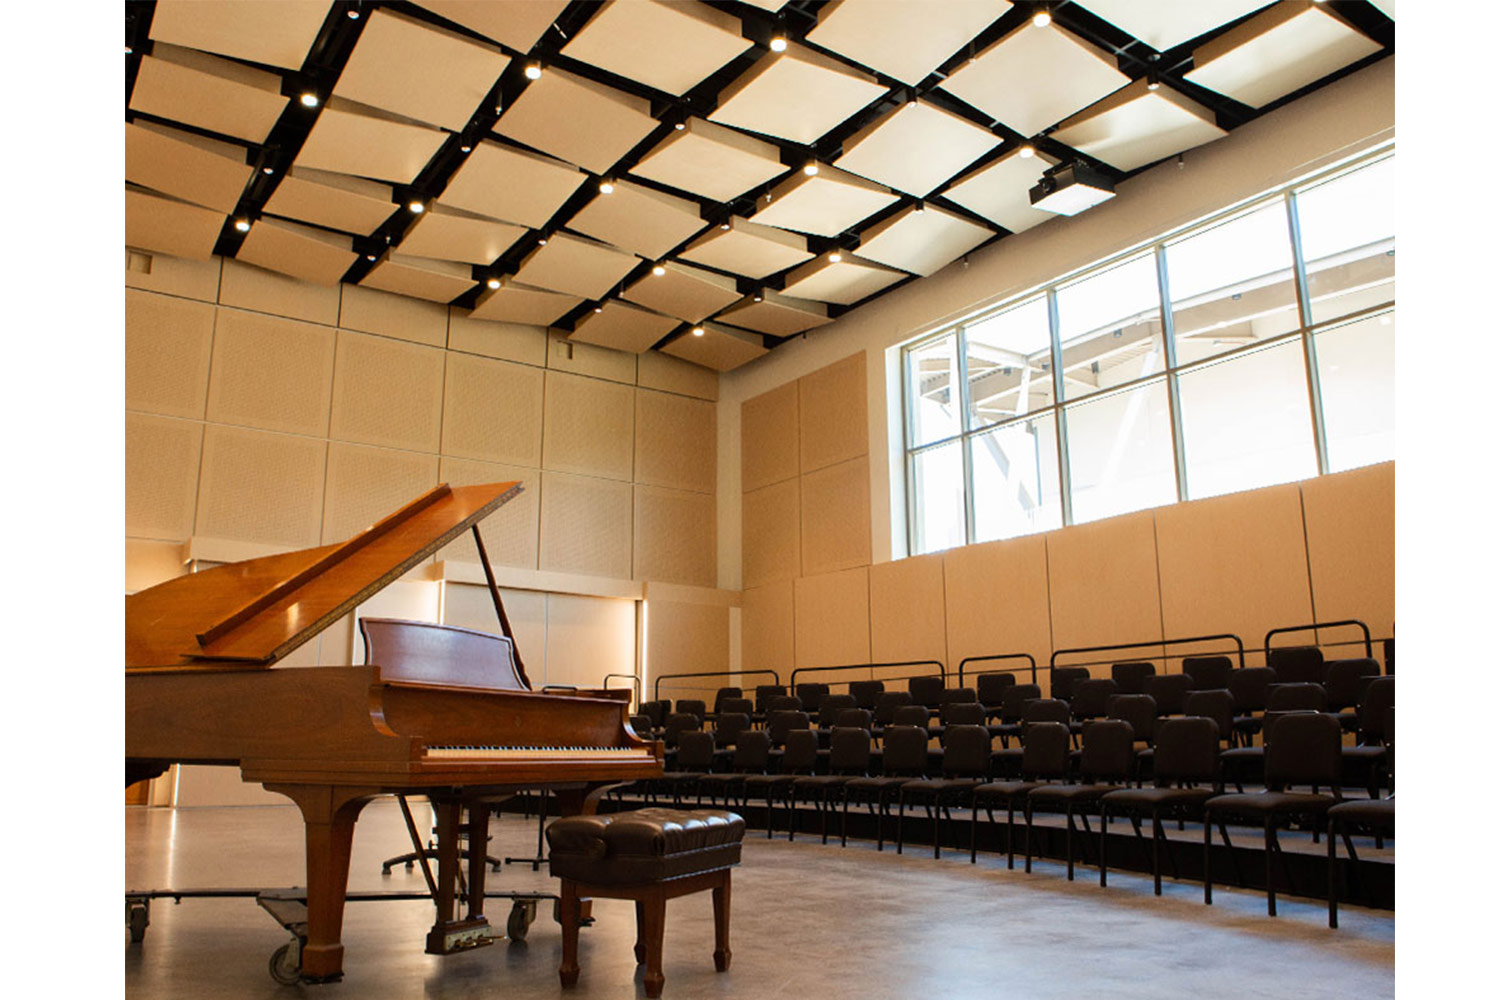 Concordia University Irvine, WSDG was commissioned for the design, acoustic consulting and systems integration of their new audio complex. Piano Performance Hall 2.